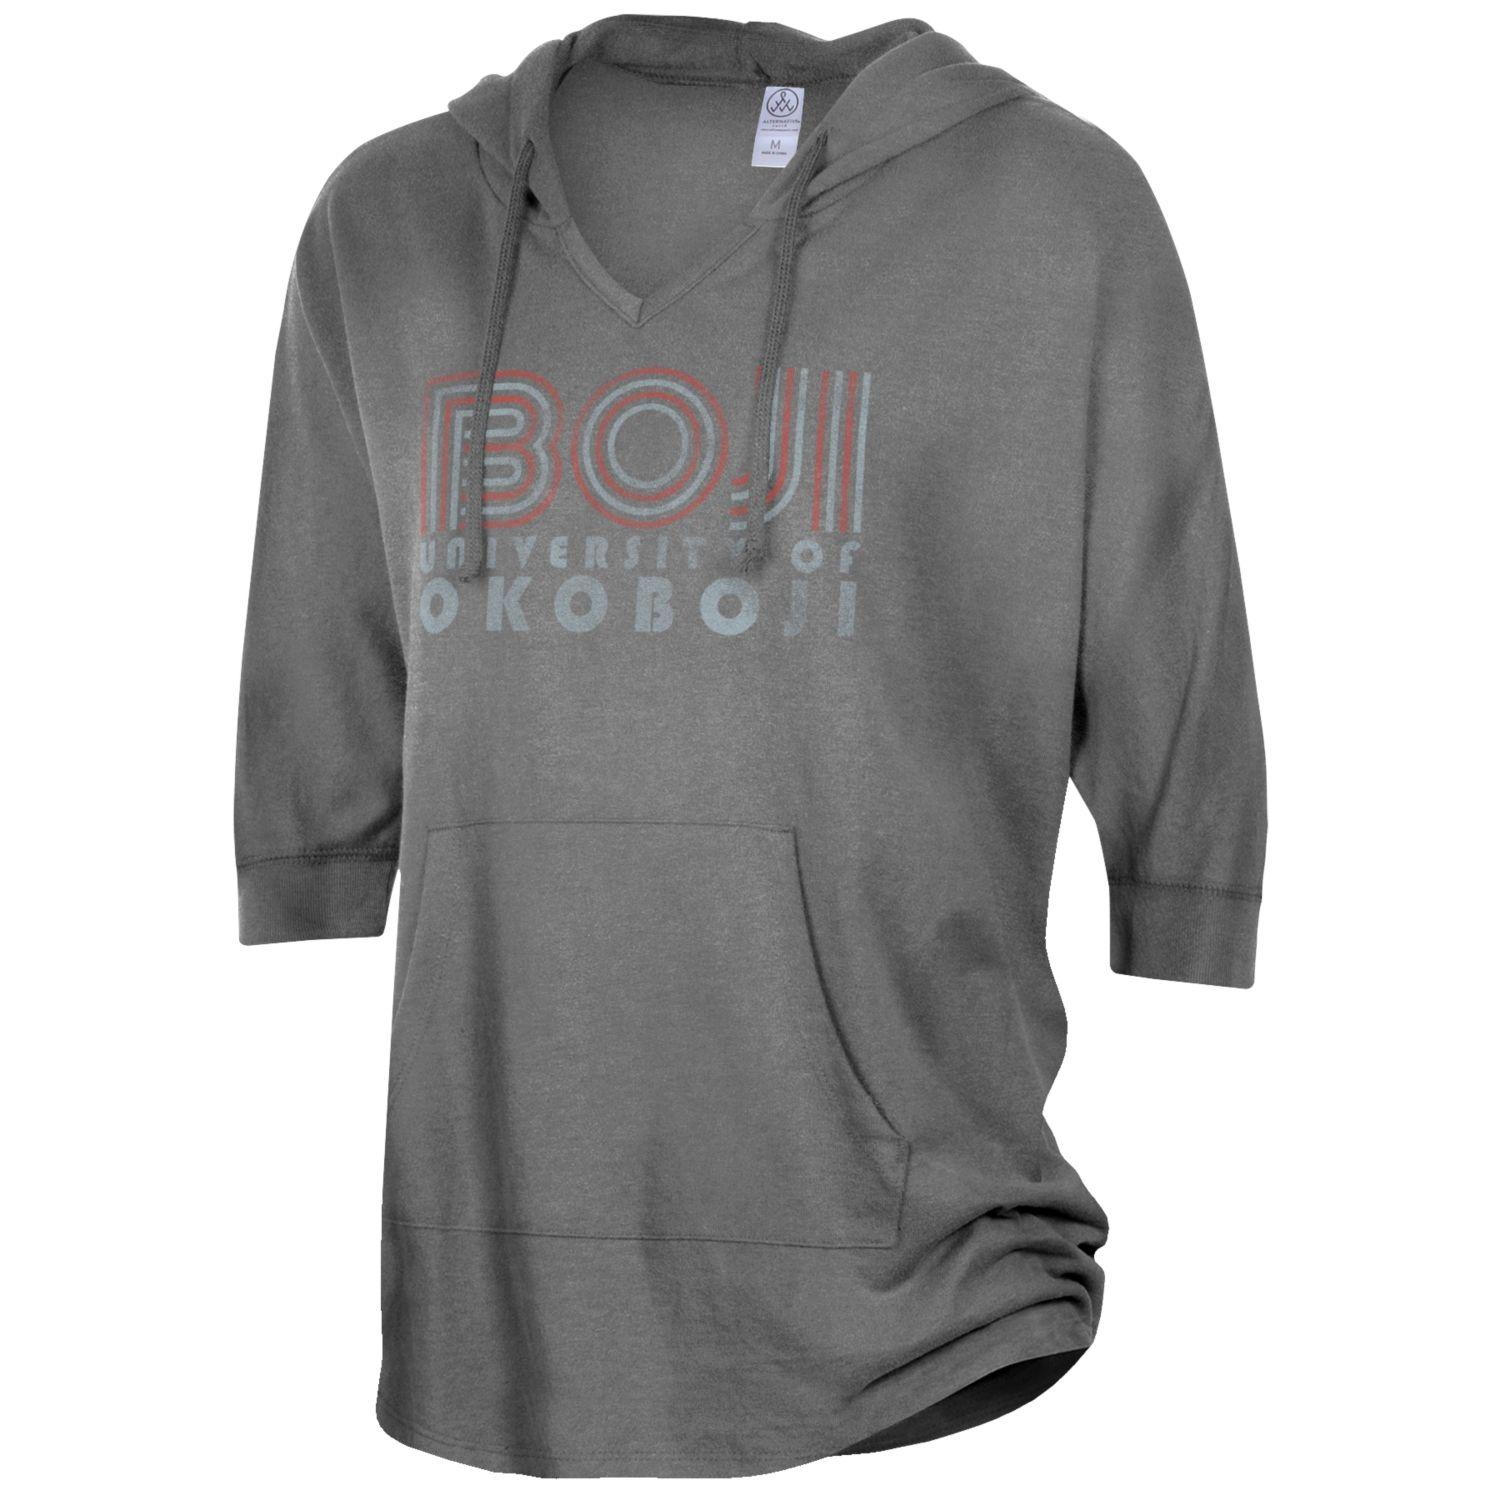 Ladies University of Okoboji Gameday Poncho - Vintage Coal